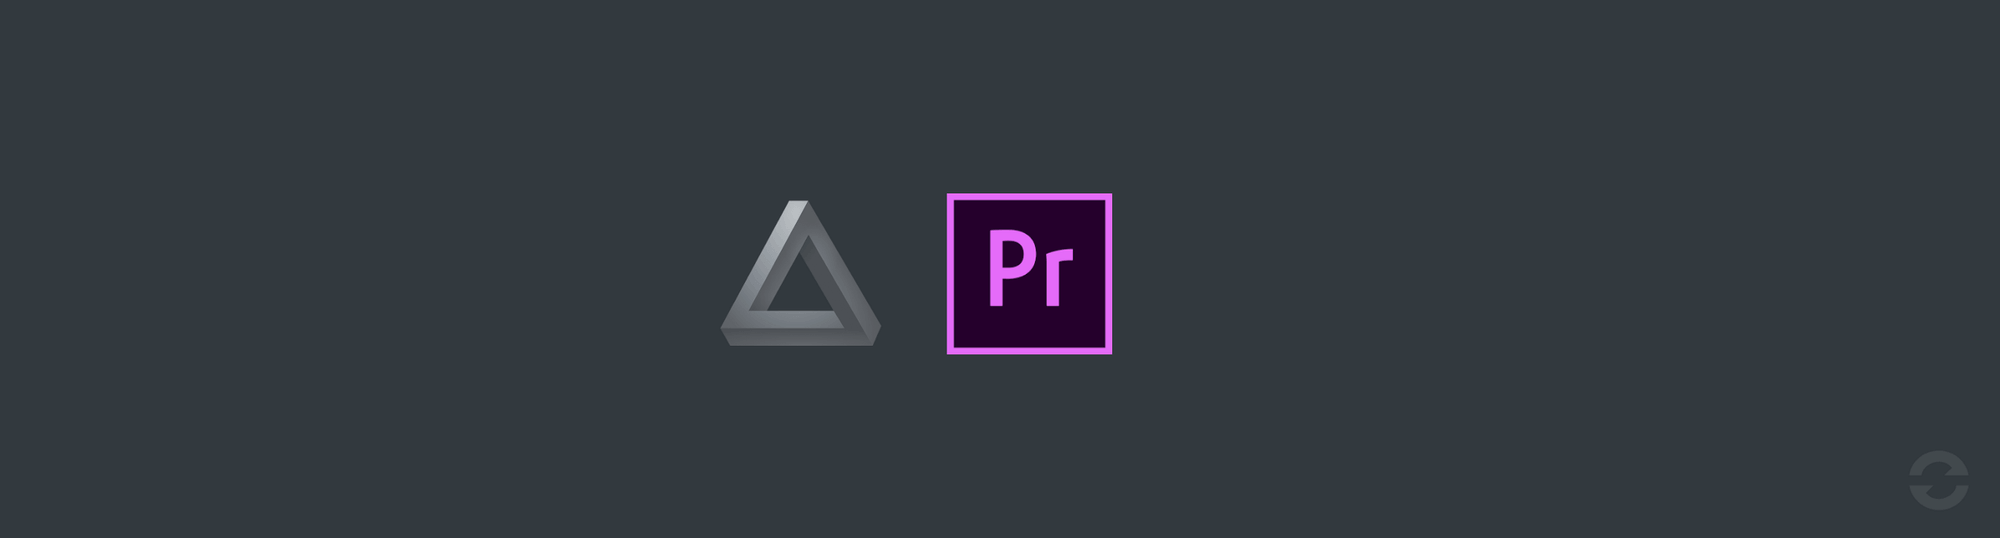 Postlab adds Premiere Pro, and more.